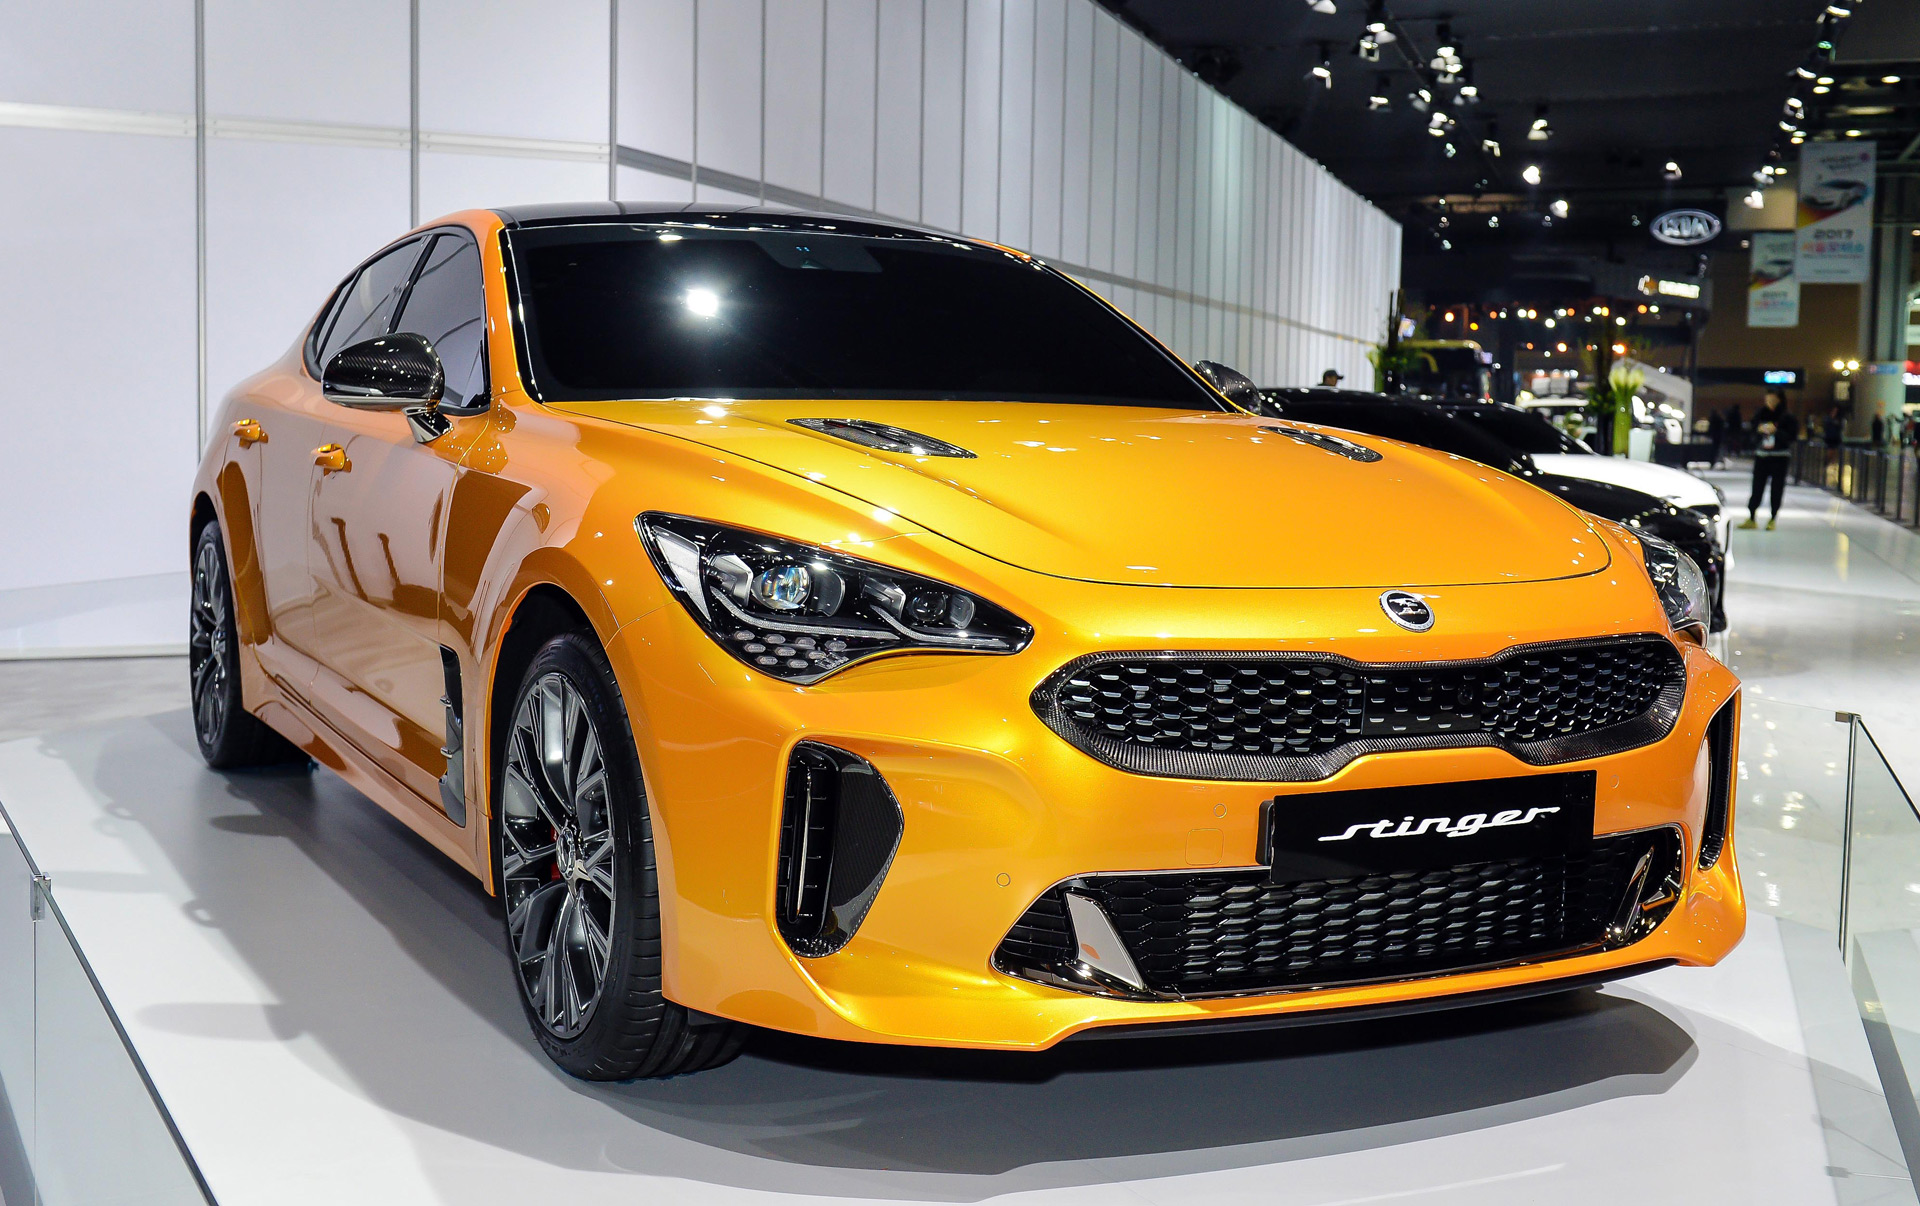 Kia Stinger 0 60 Time Under 4 9 Seconds